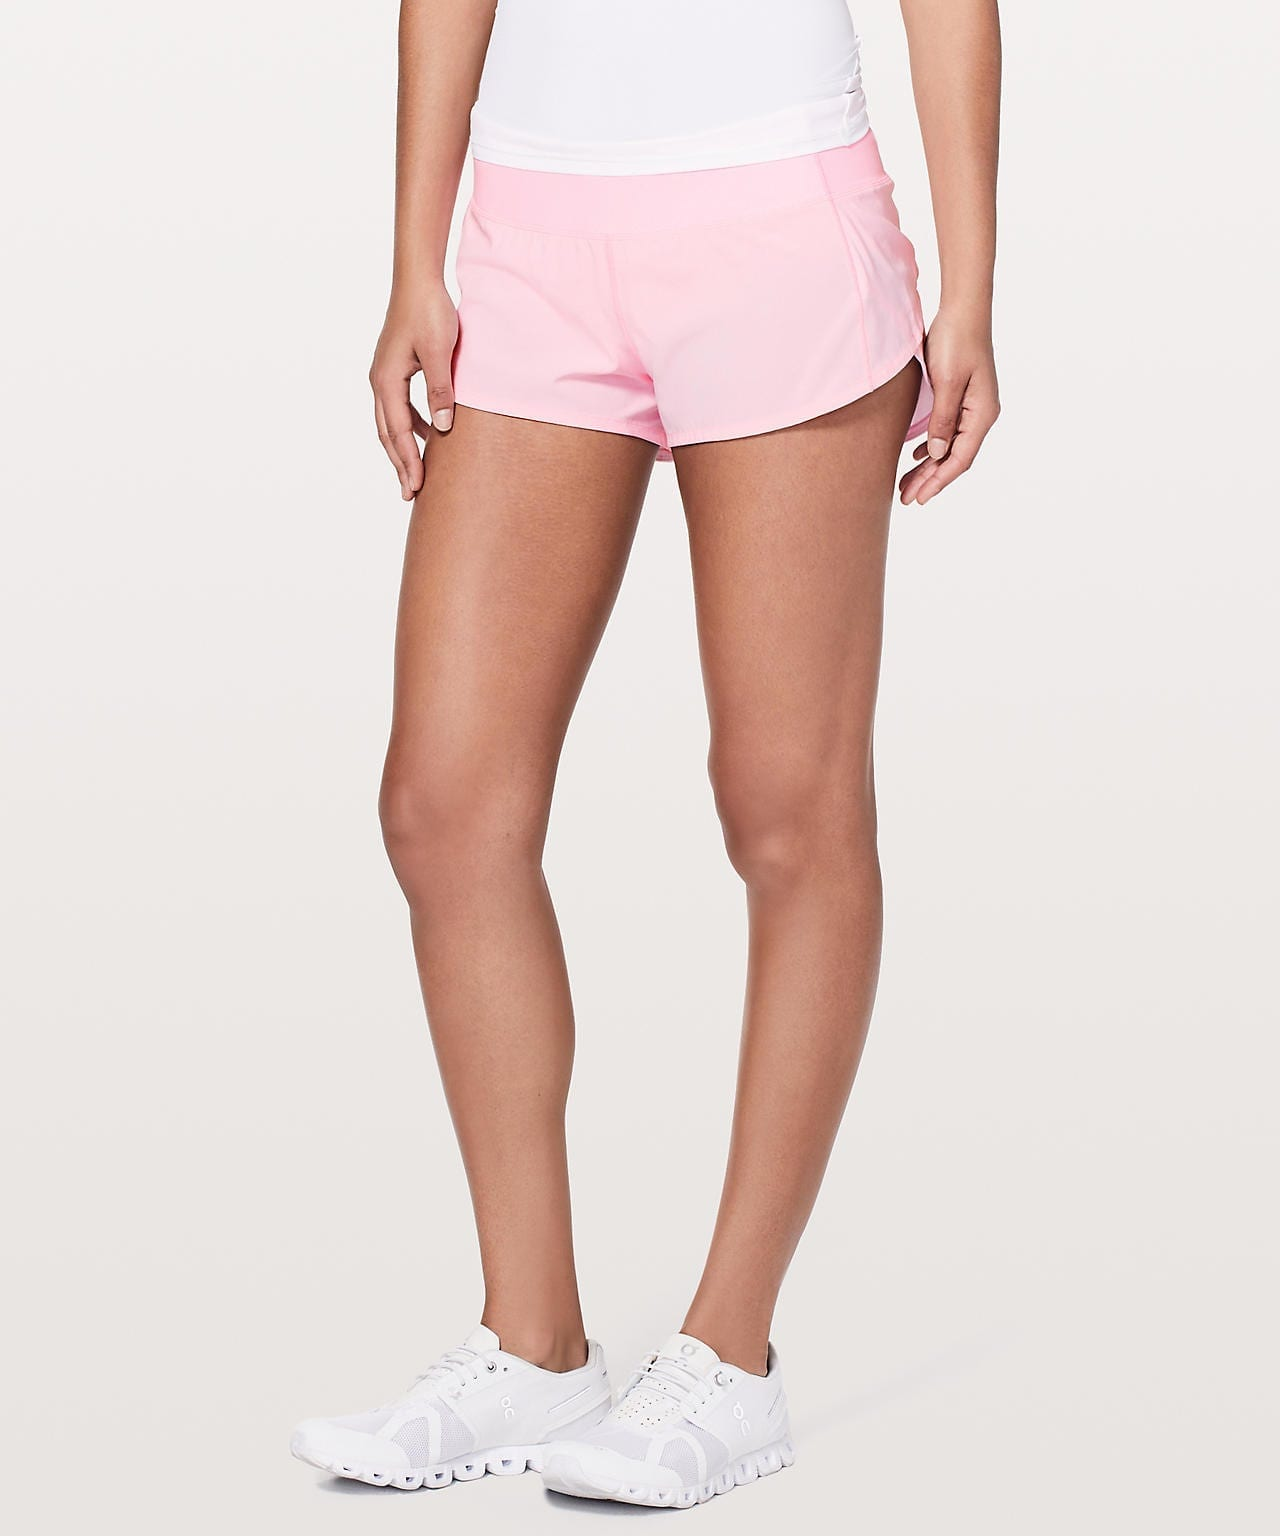 Speed Up Short - Miami Pink